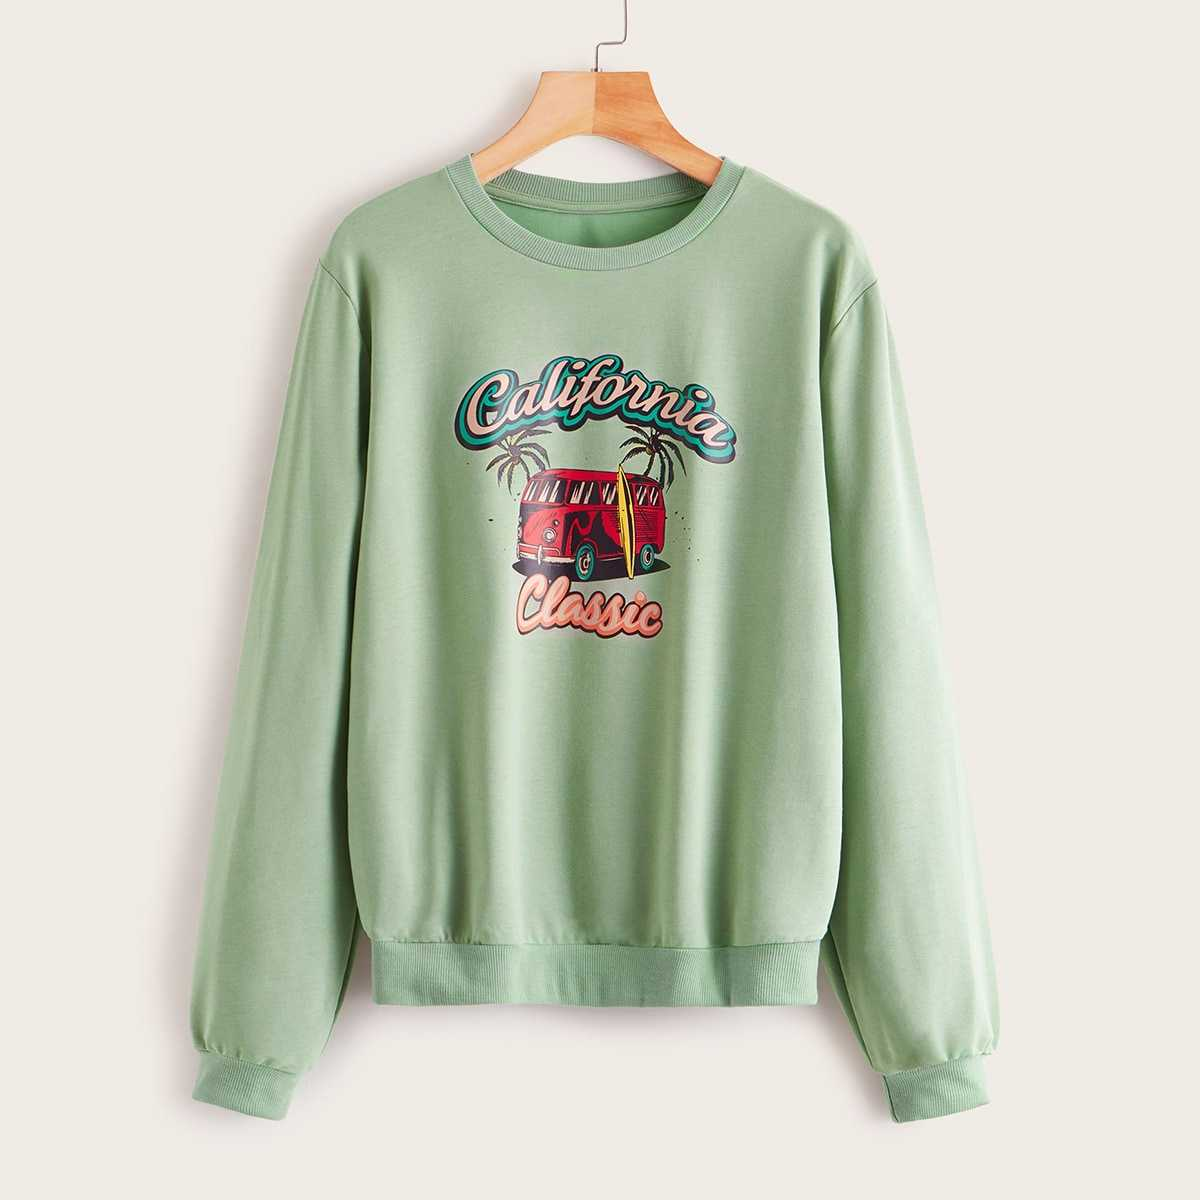 Letter And Car Print Sweatshirt in Green by ROMWE on GOOFASH